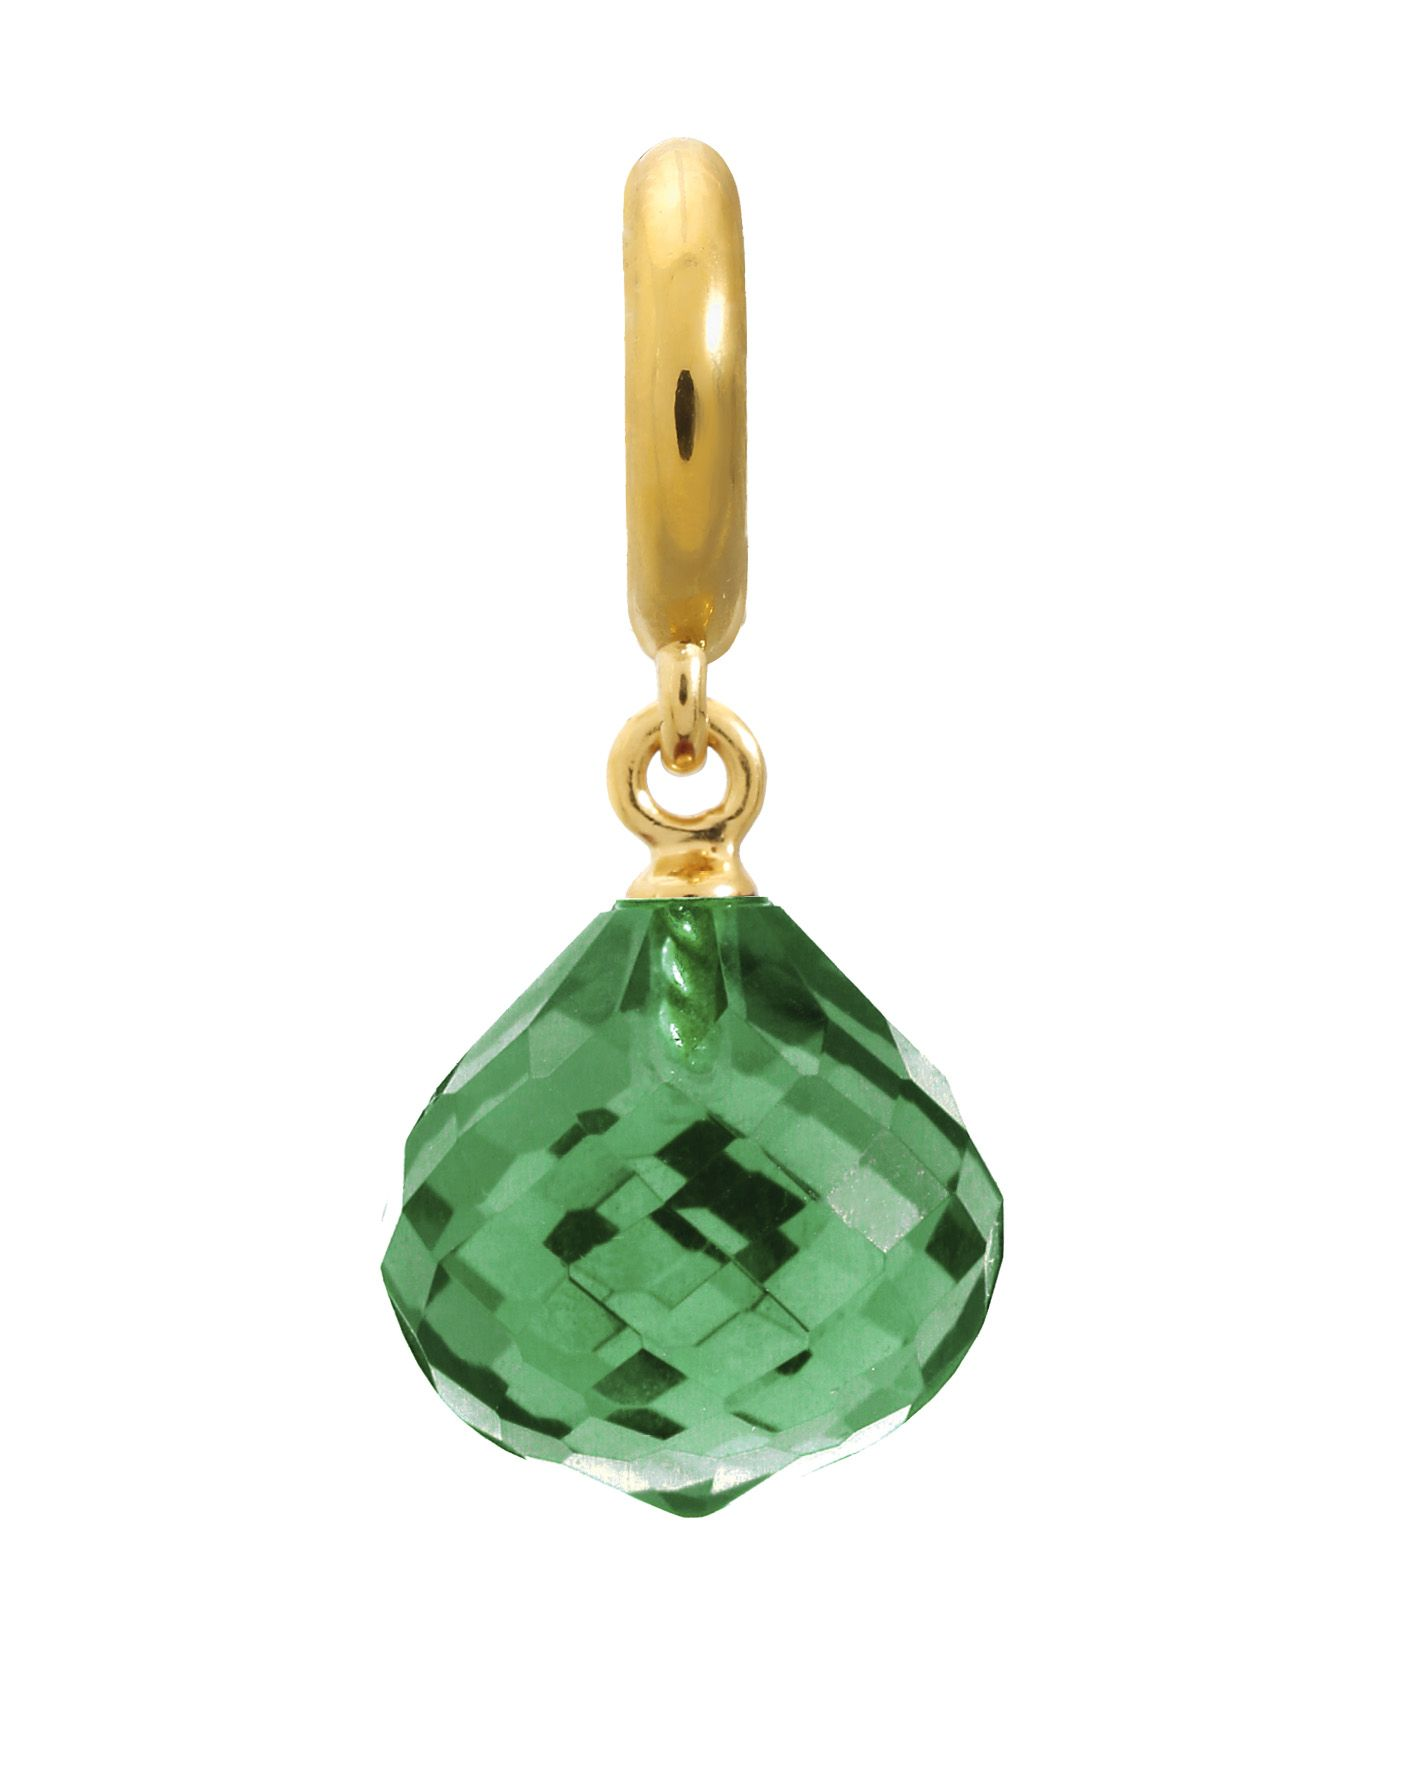 Endless Jewelry Jennifer Lopez Collection 18KY Plated Sterling Silver Emerald Love Drop Charm